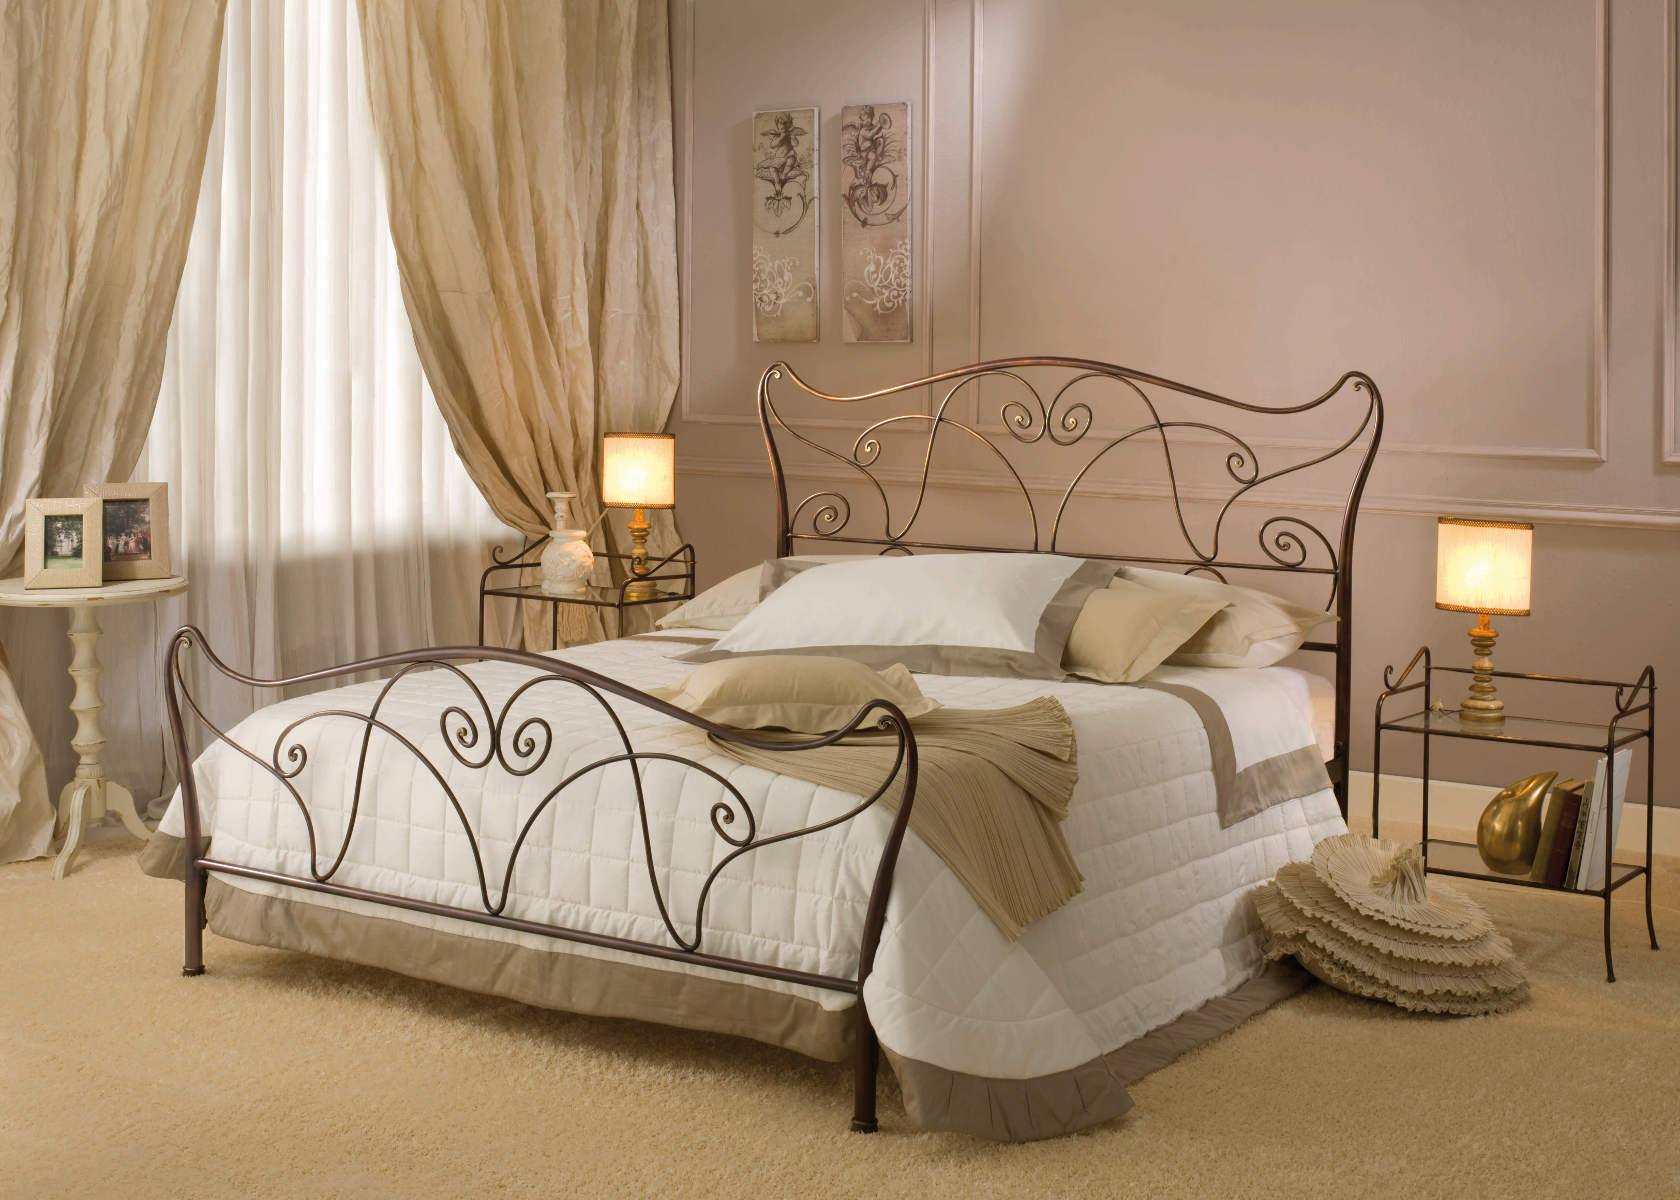 orl ans doppelbett 180x210cm metallbettenshop. Black Bedroom Furniture Sets. Home Design Ideas